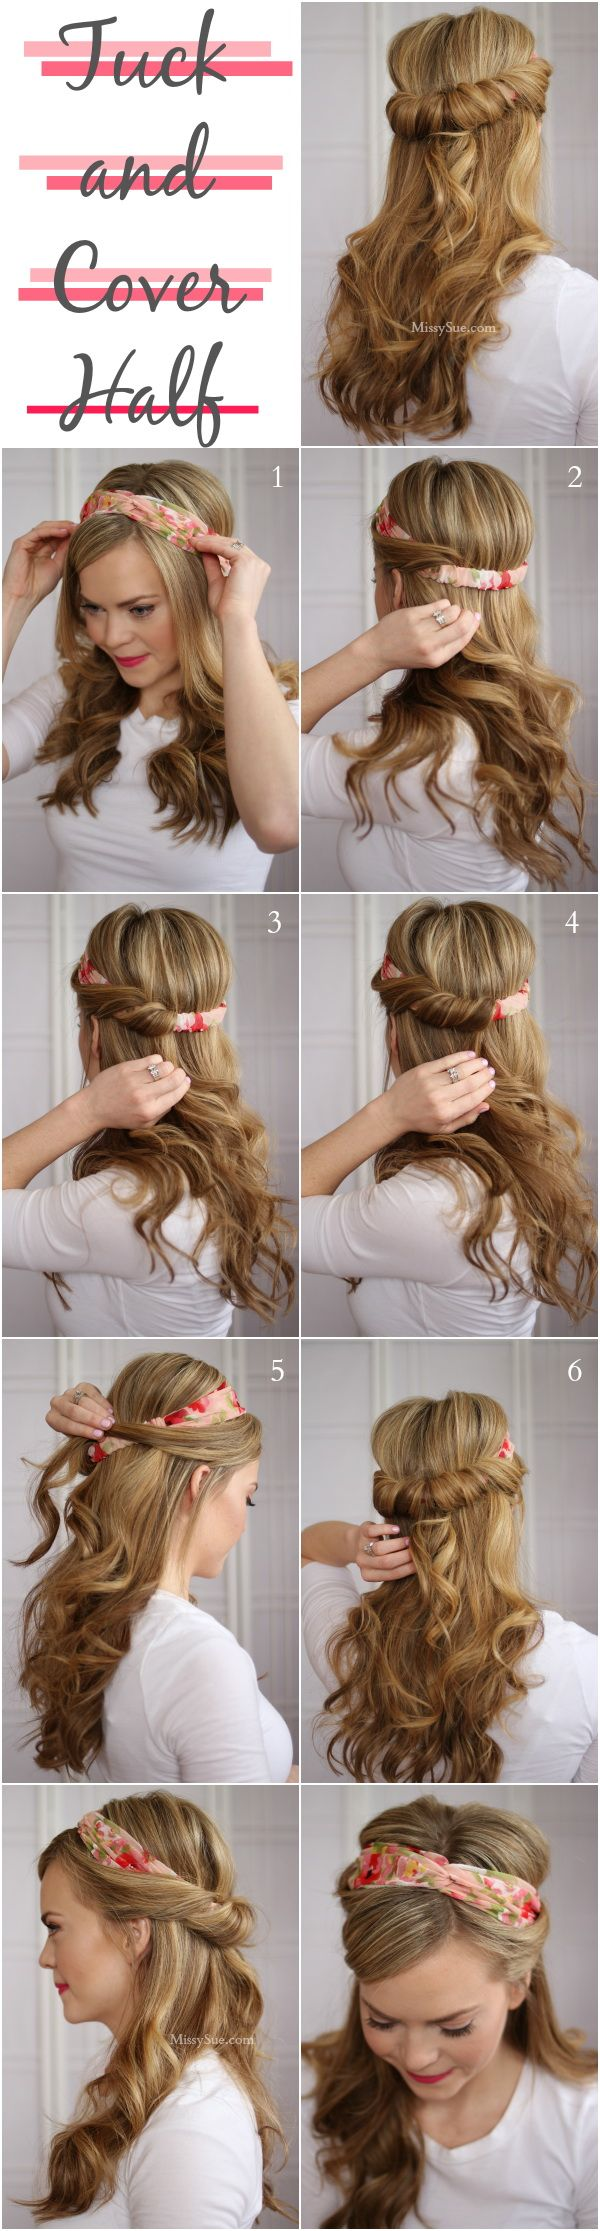 Tuck and Cover Half - Hairstyle Tutorial - Style Estate -